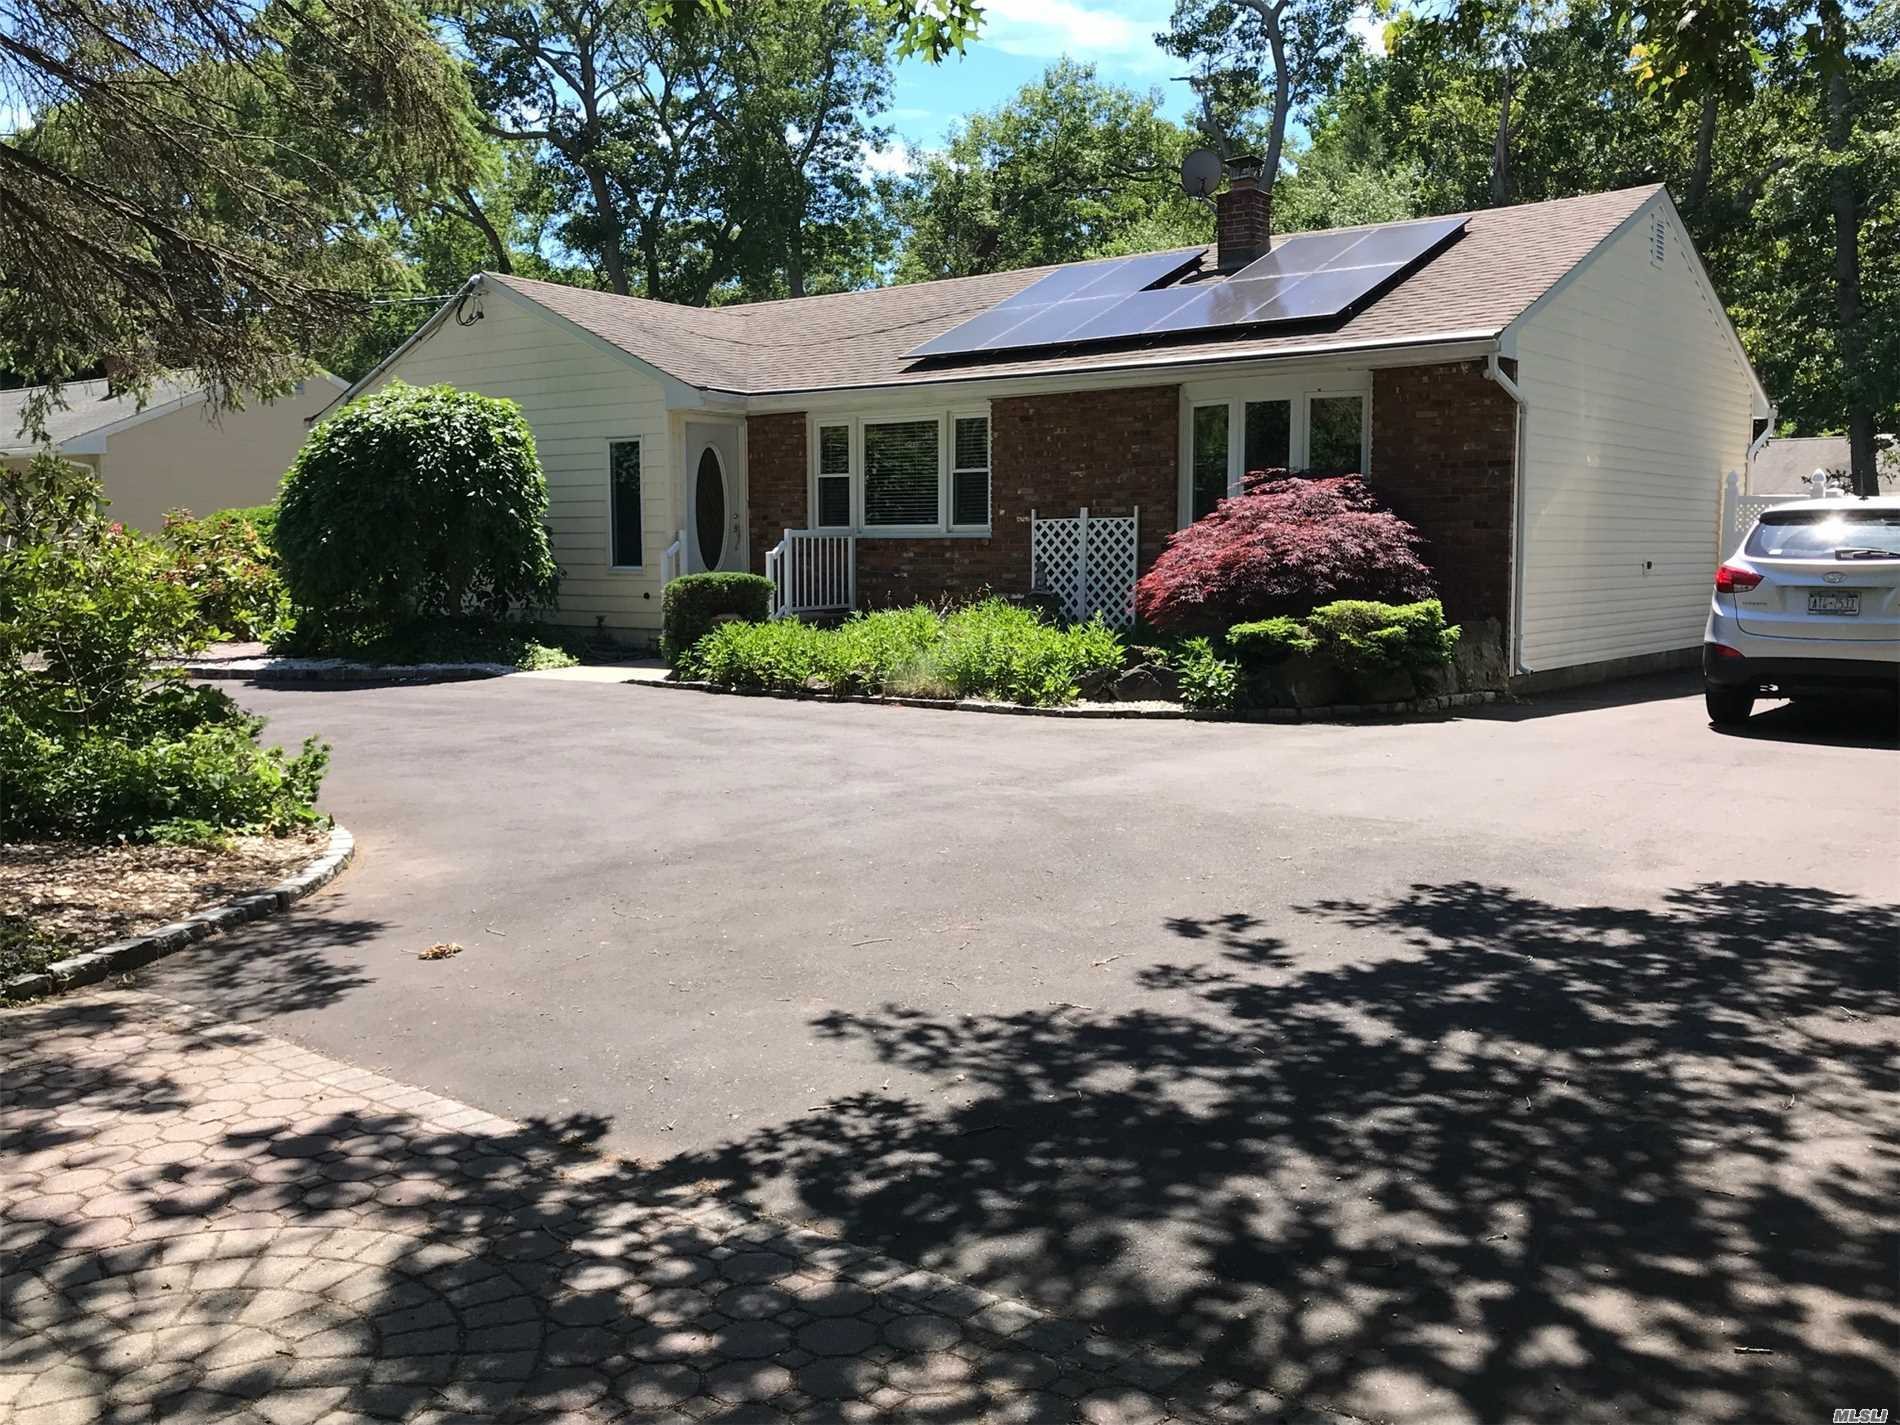 In The Heart Of Brookhaven Hamlet .This Three Bedroom Gem Sits Across From A 2000 Acre Wildlife Preserve, Fishing And Boating Is Minutes Away .A Truly Cared For Home. The Backyard Is Fenced With A Resort Feel.Inground Pool, Almost Out Of The Box Jacuzzi , Cabana With Full Bathroom .A Little Paradise For You And Yours. Ps 200 Amp Service, Docking Rights , A Very Warm / Good Feel As You Enter. This House Has Good Bones. Opportunity Is Knocking At Your Door.